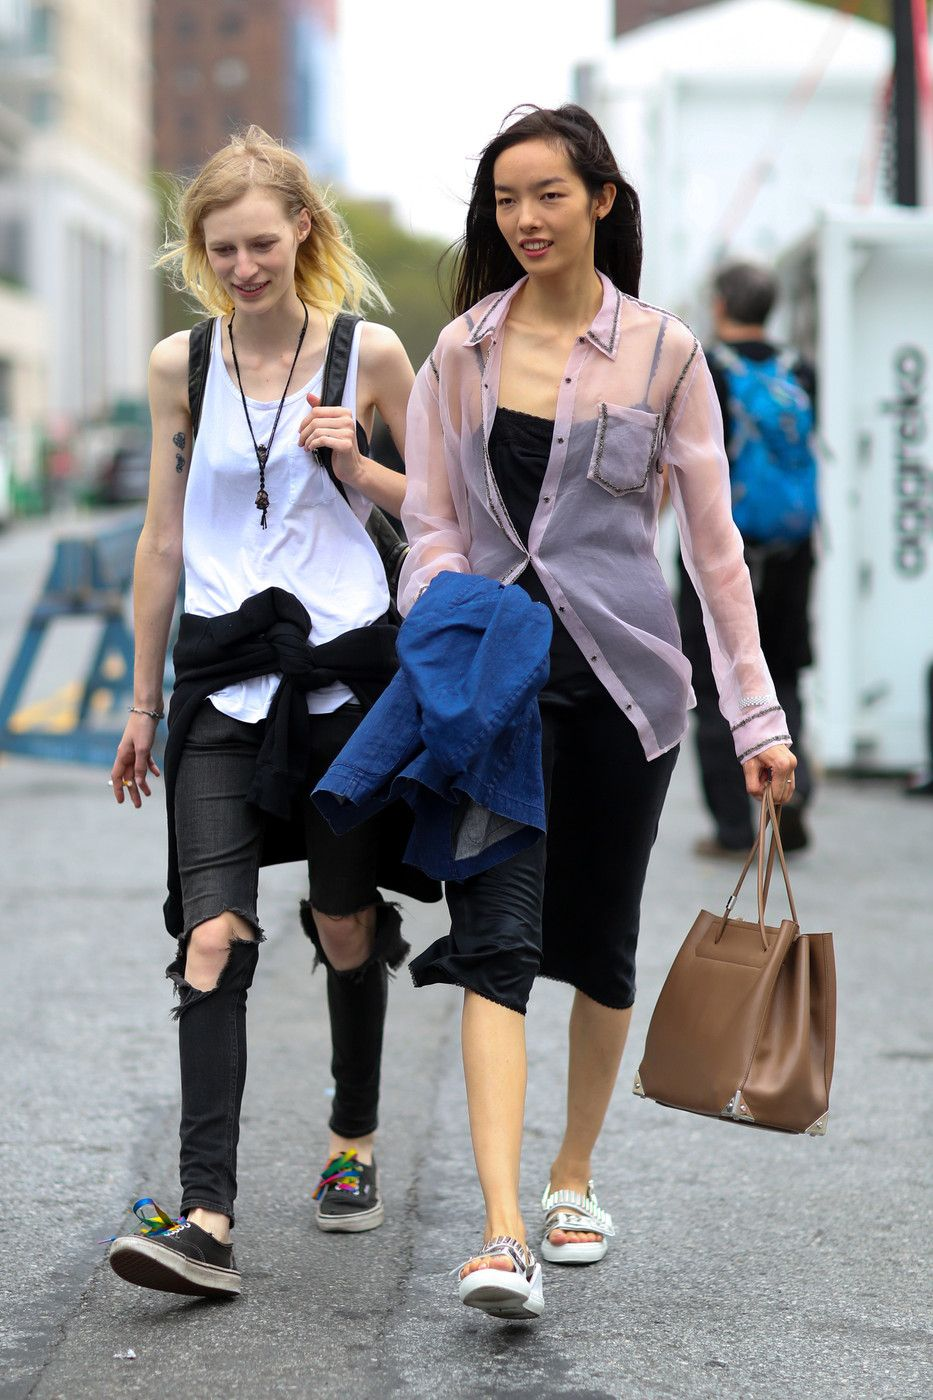 Models at New York Spring 2015 / FEI FEI SUN and JULIA NOBIS / FEI FEI is wearing Toga Pulla sandals